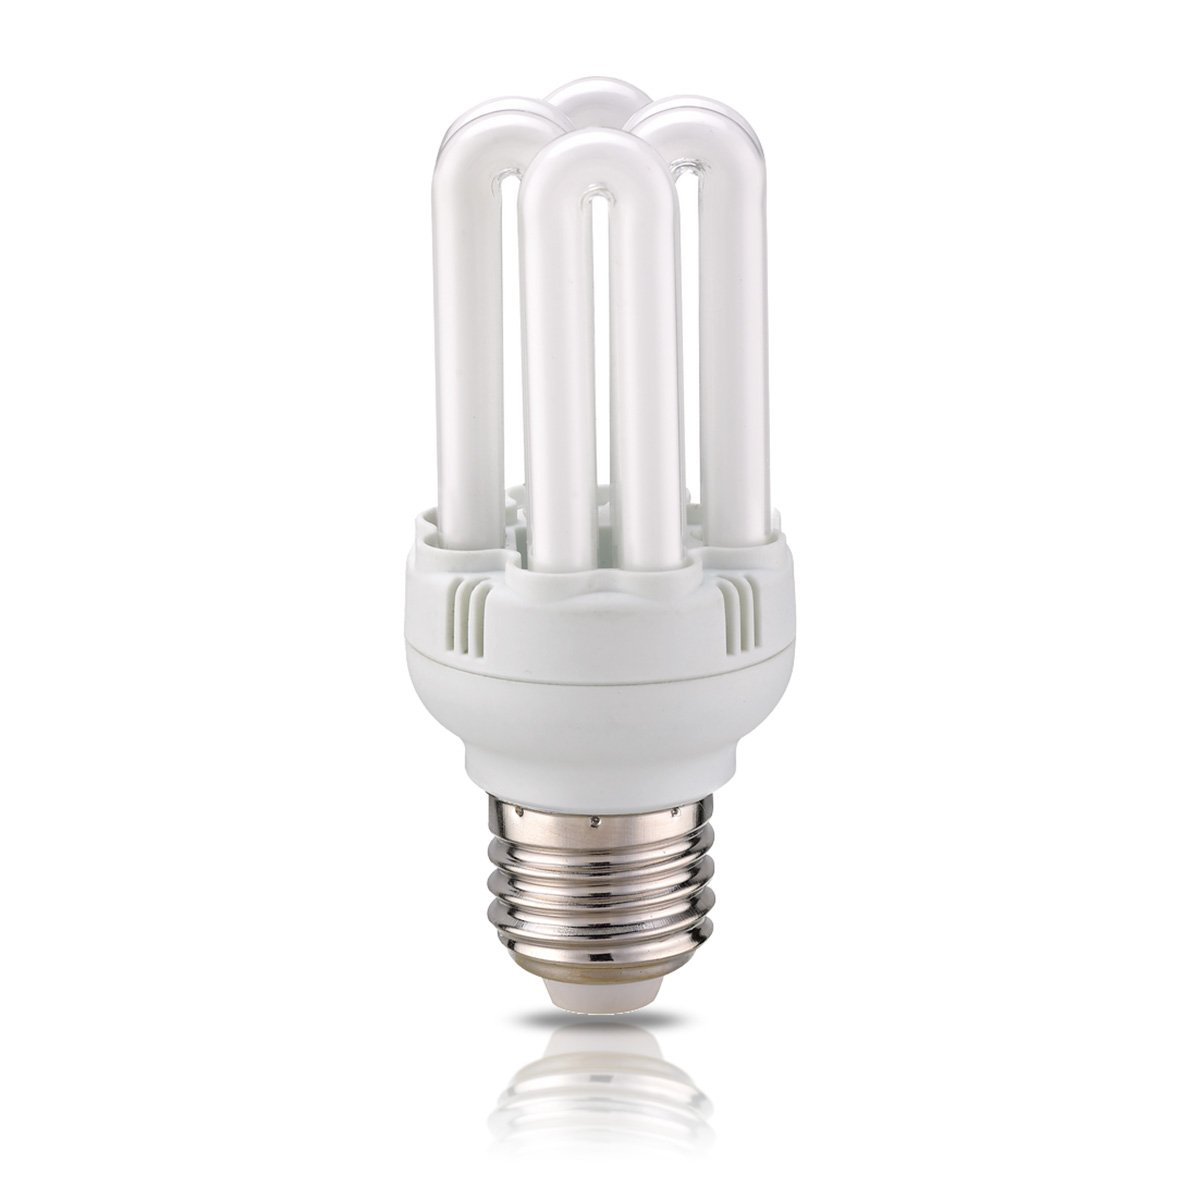 britools Lampe Basse Consommation E27, 18.0 W, lumiè re froide 6400 K 18.0W lumière froide 6400K M38084F